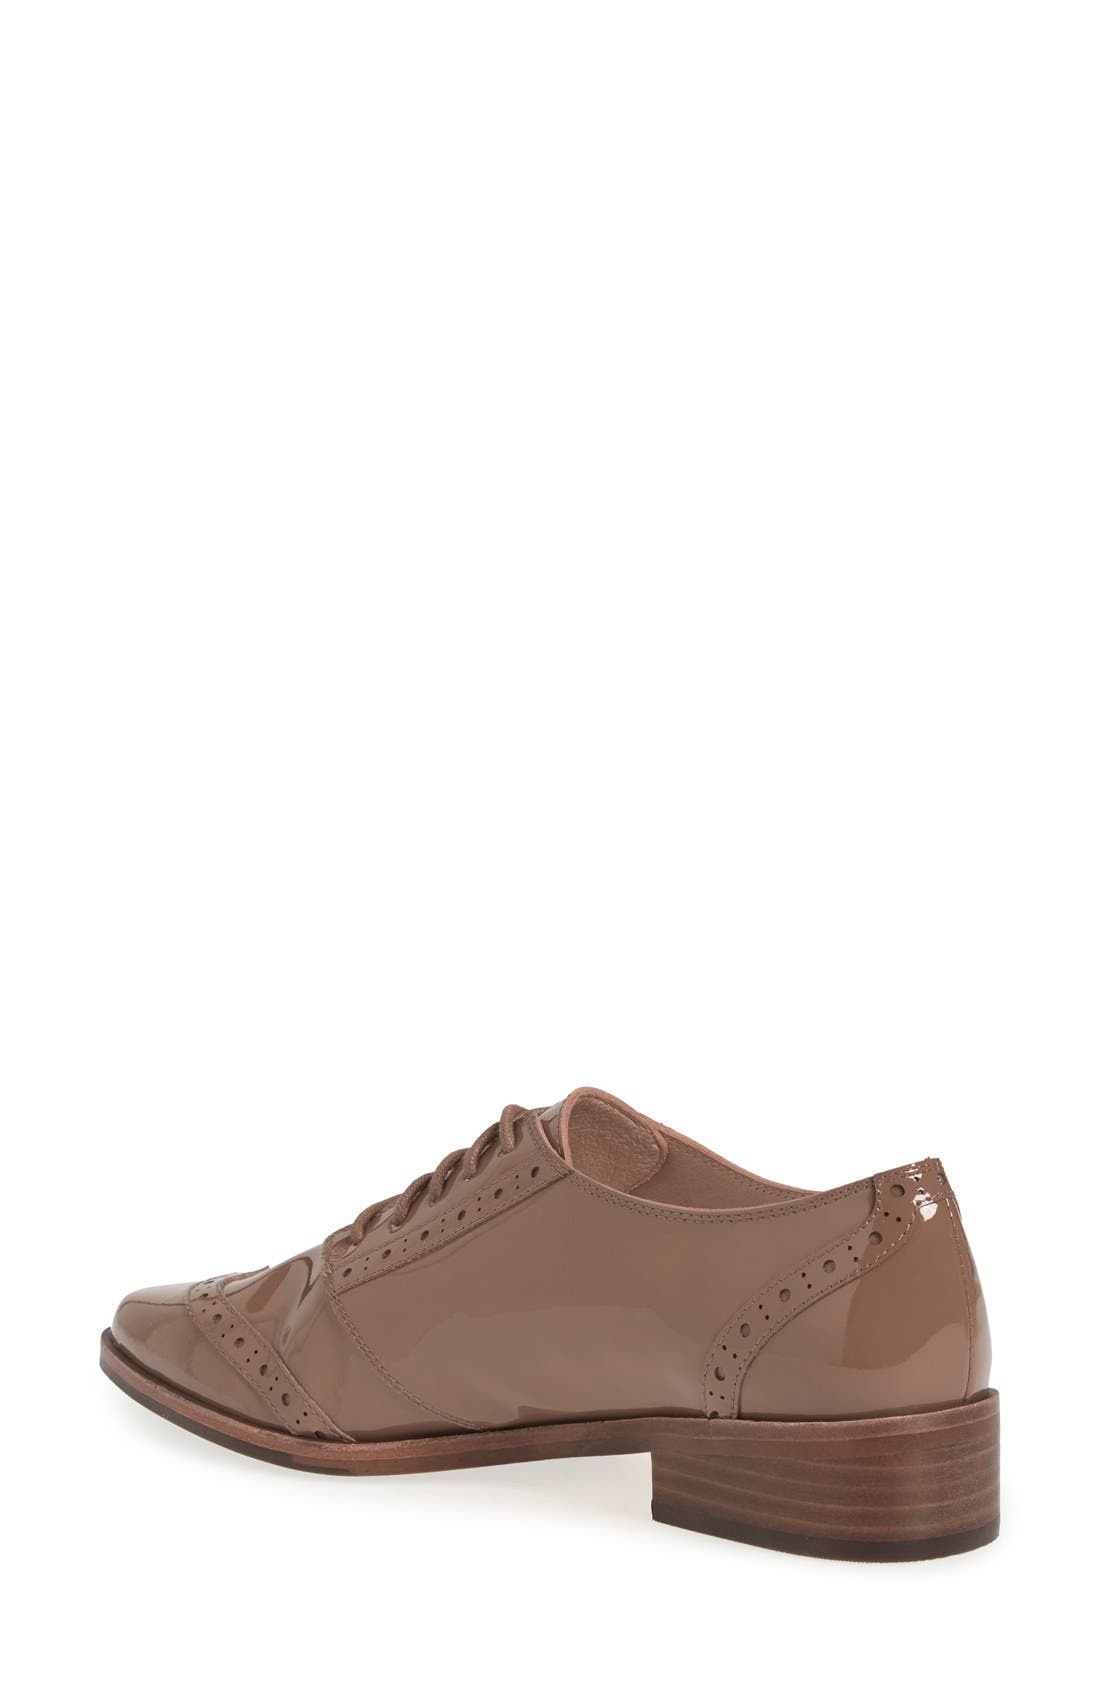 Alternate Image 2  - Louise et Cie 'Adelise' Oxford (Women) (Nordstrom Exclusive)